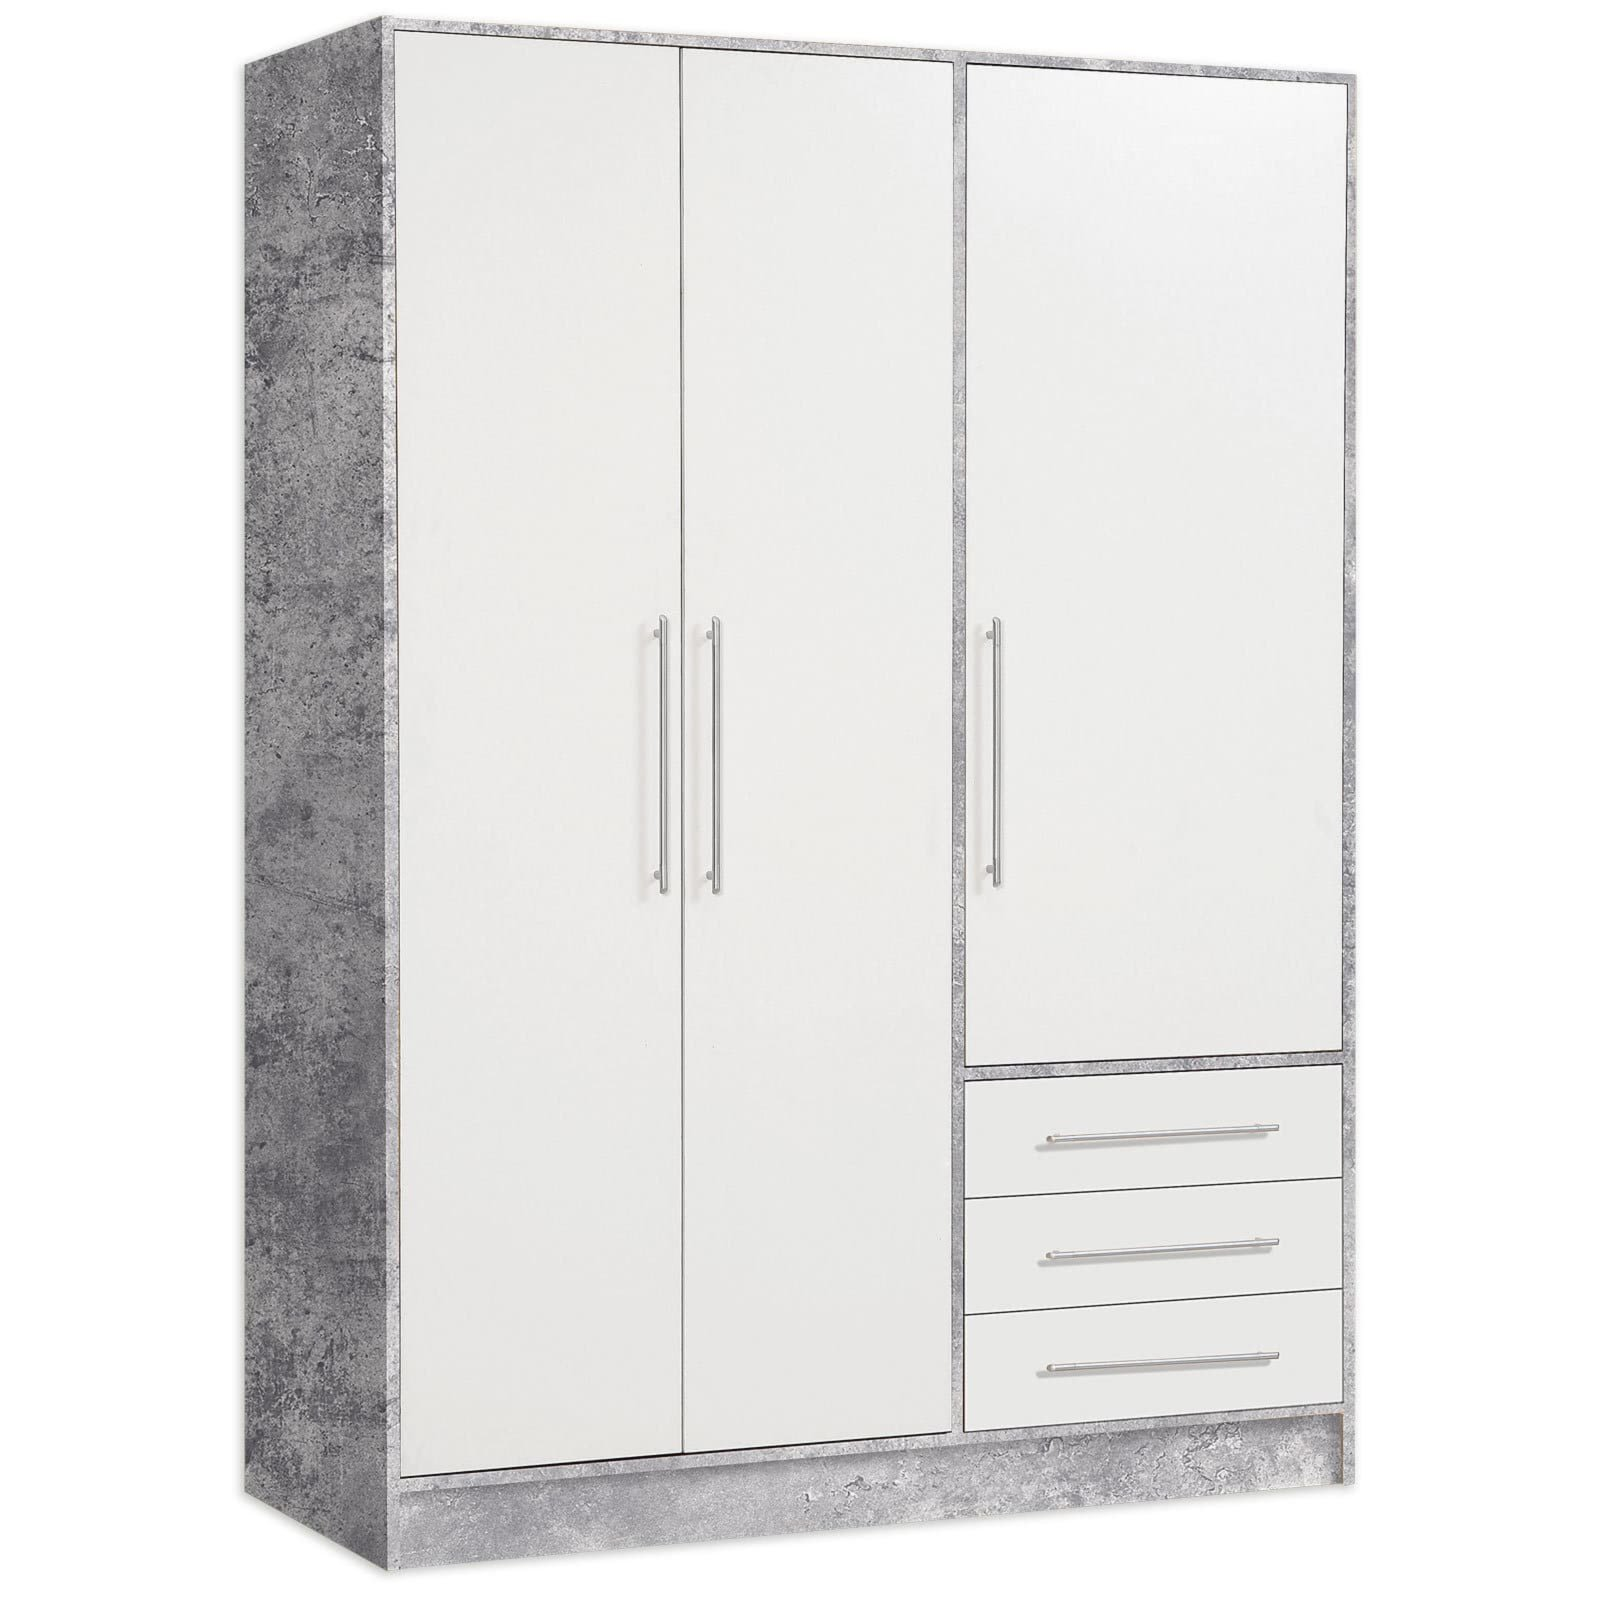 kleiderschrank jupiter betonoptik wei 145 cm dreht renschr nke kleiderschr nke. Black Bedroom Furniture Sets. Home Design Ideas